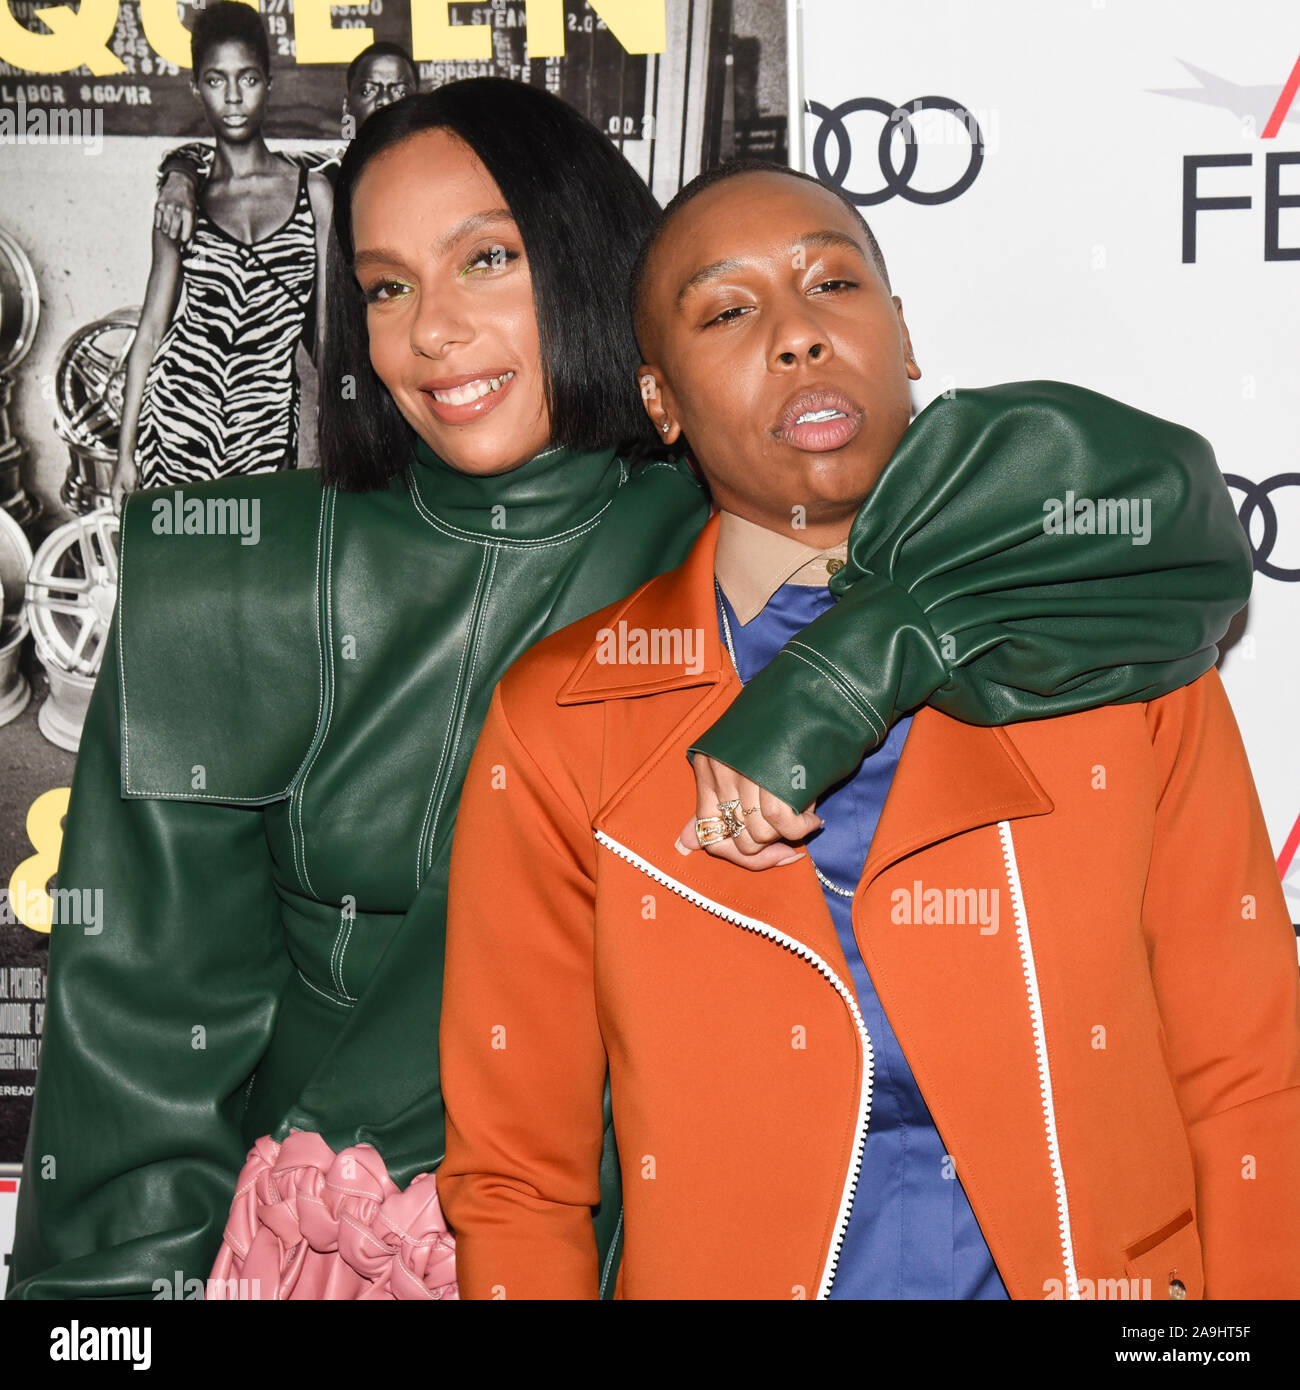 November 14, 2019, Hollywood, California, USA: Melina Matsoukas, Lena Waithe attends AFI FEST 2019 Presented By Audi – ''Queen & Slim'' Premiere. (Credit Image: © Billy Bennight/ZUMA Wire) Stock Photo